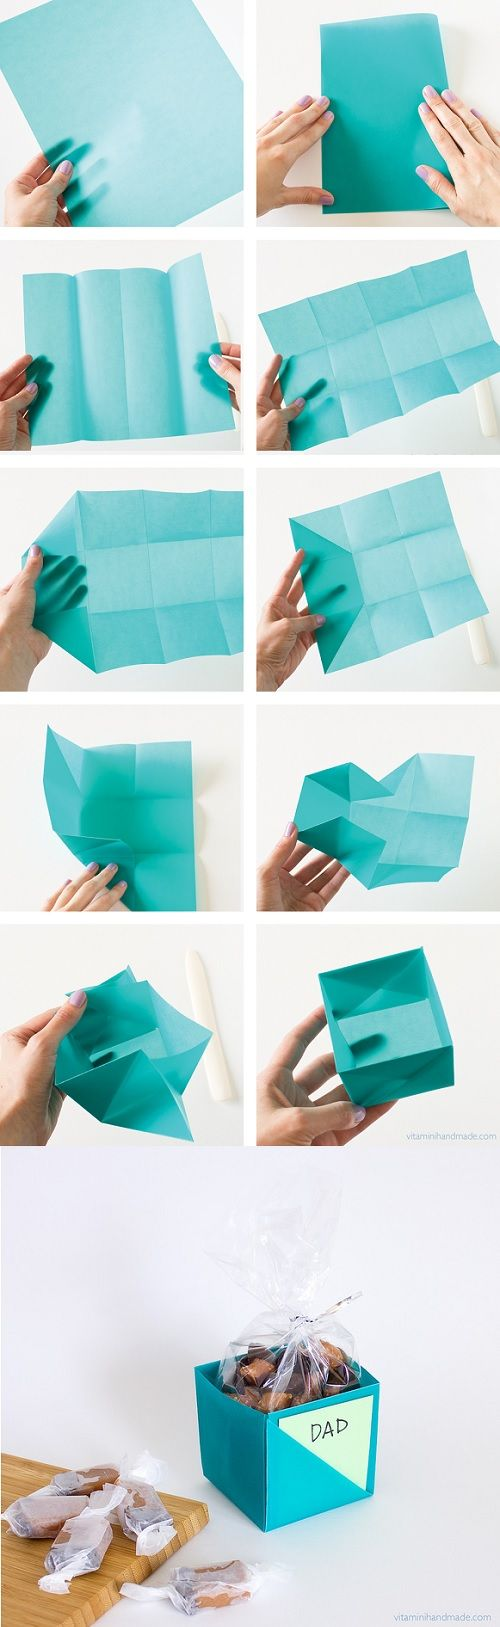 Boxes  Boxes artificial and Expert Gift   With jewelry    DIY These Become a Projects online Origami pakistani